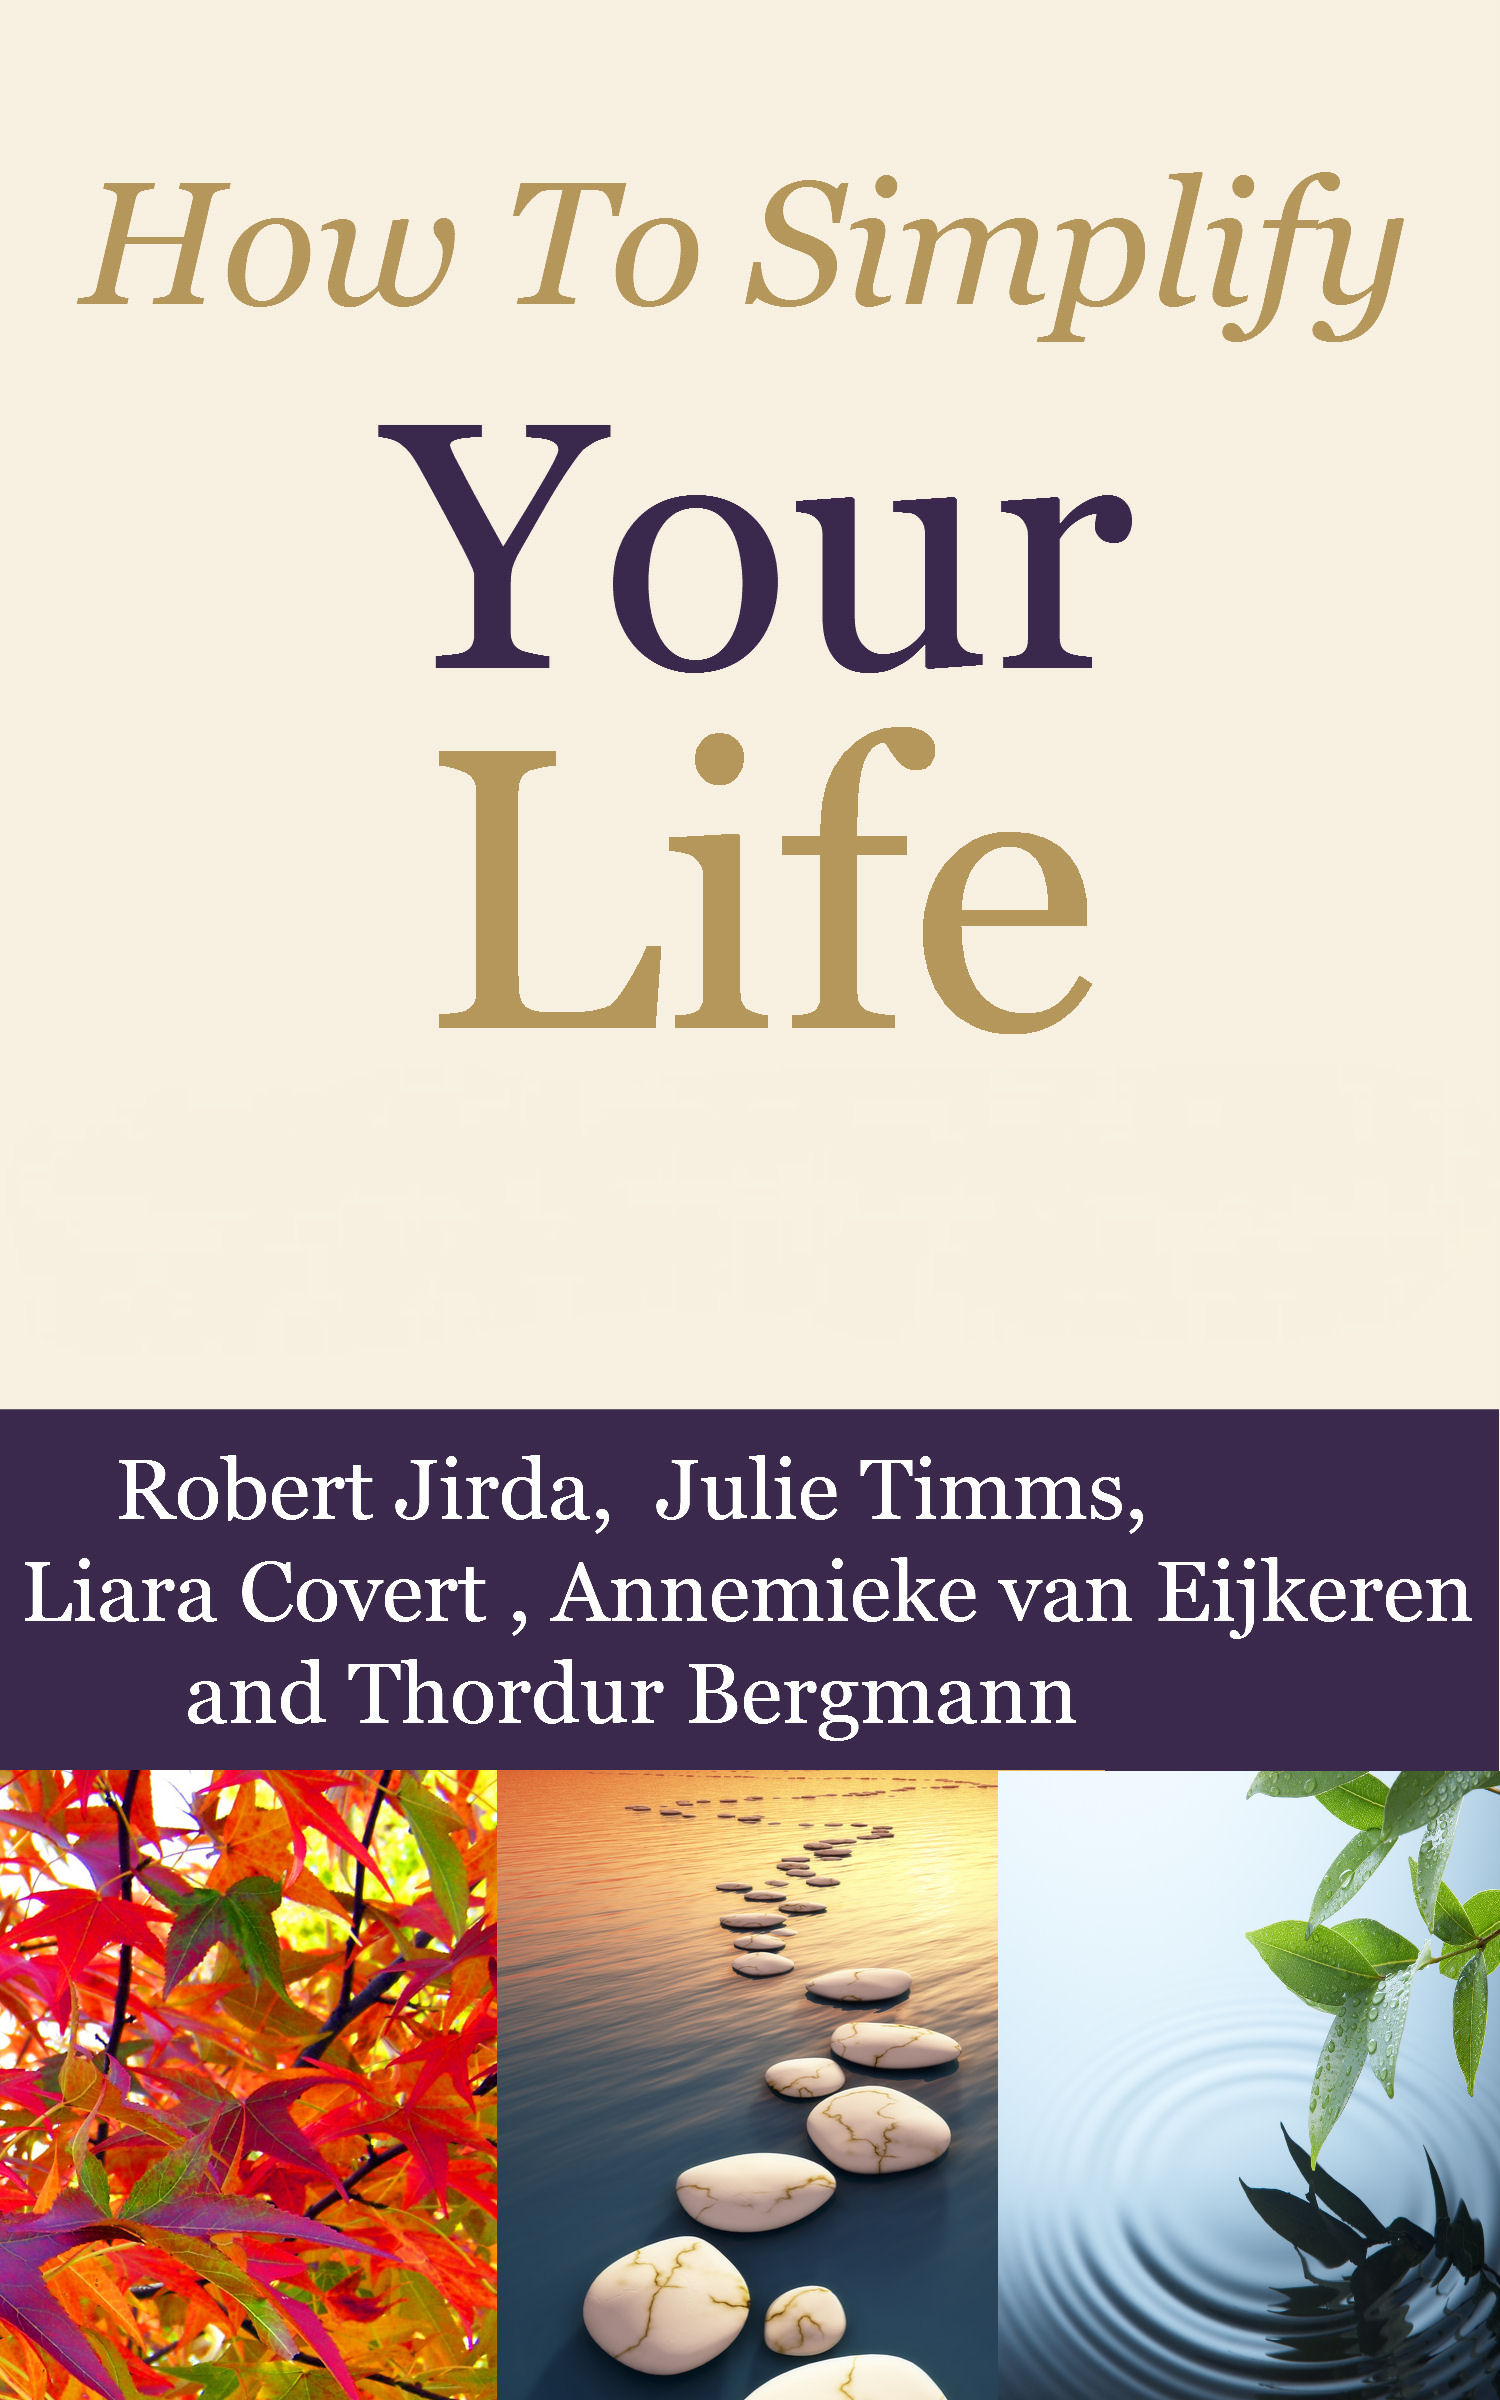 Life Quotes Books How To Simplify Your Life  Inspirational Quotes Books & Articles